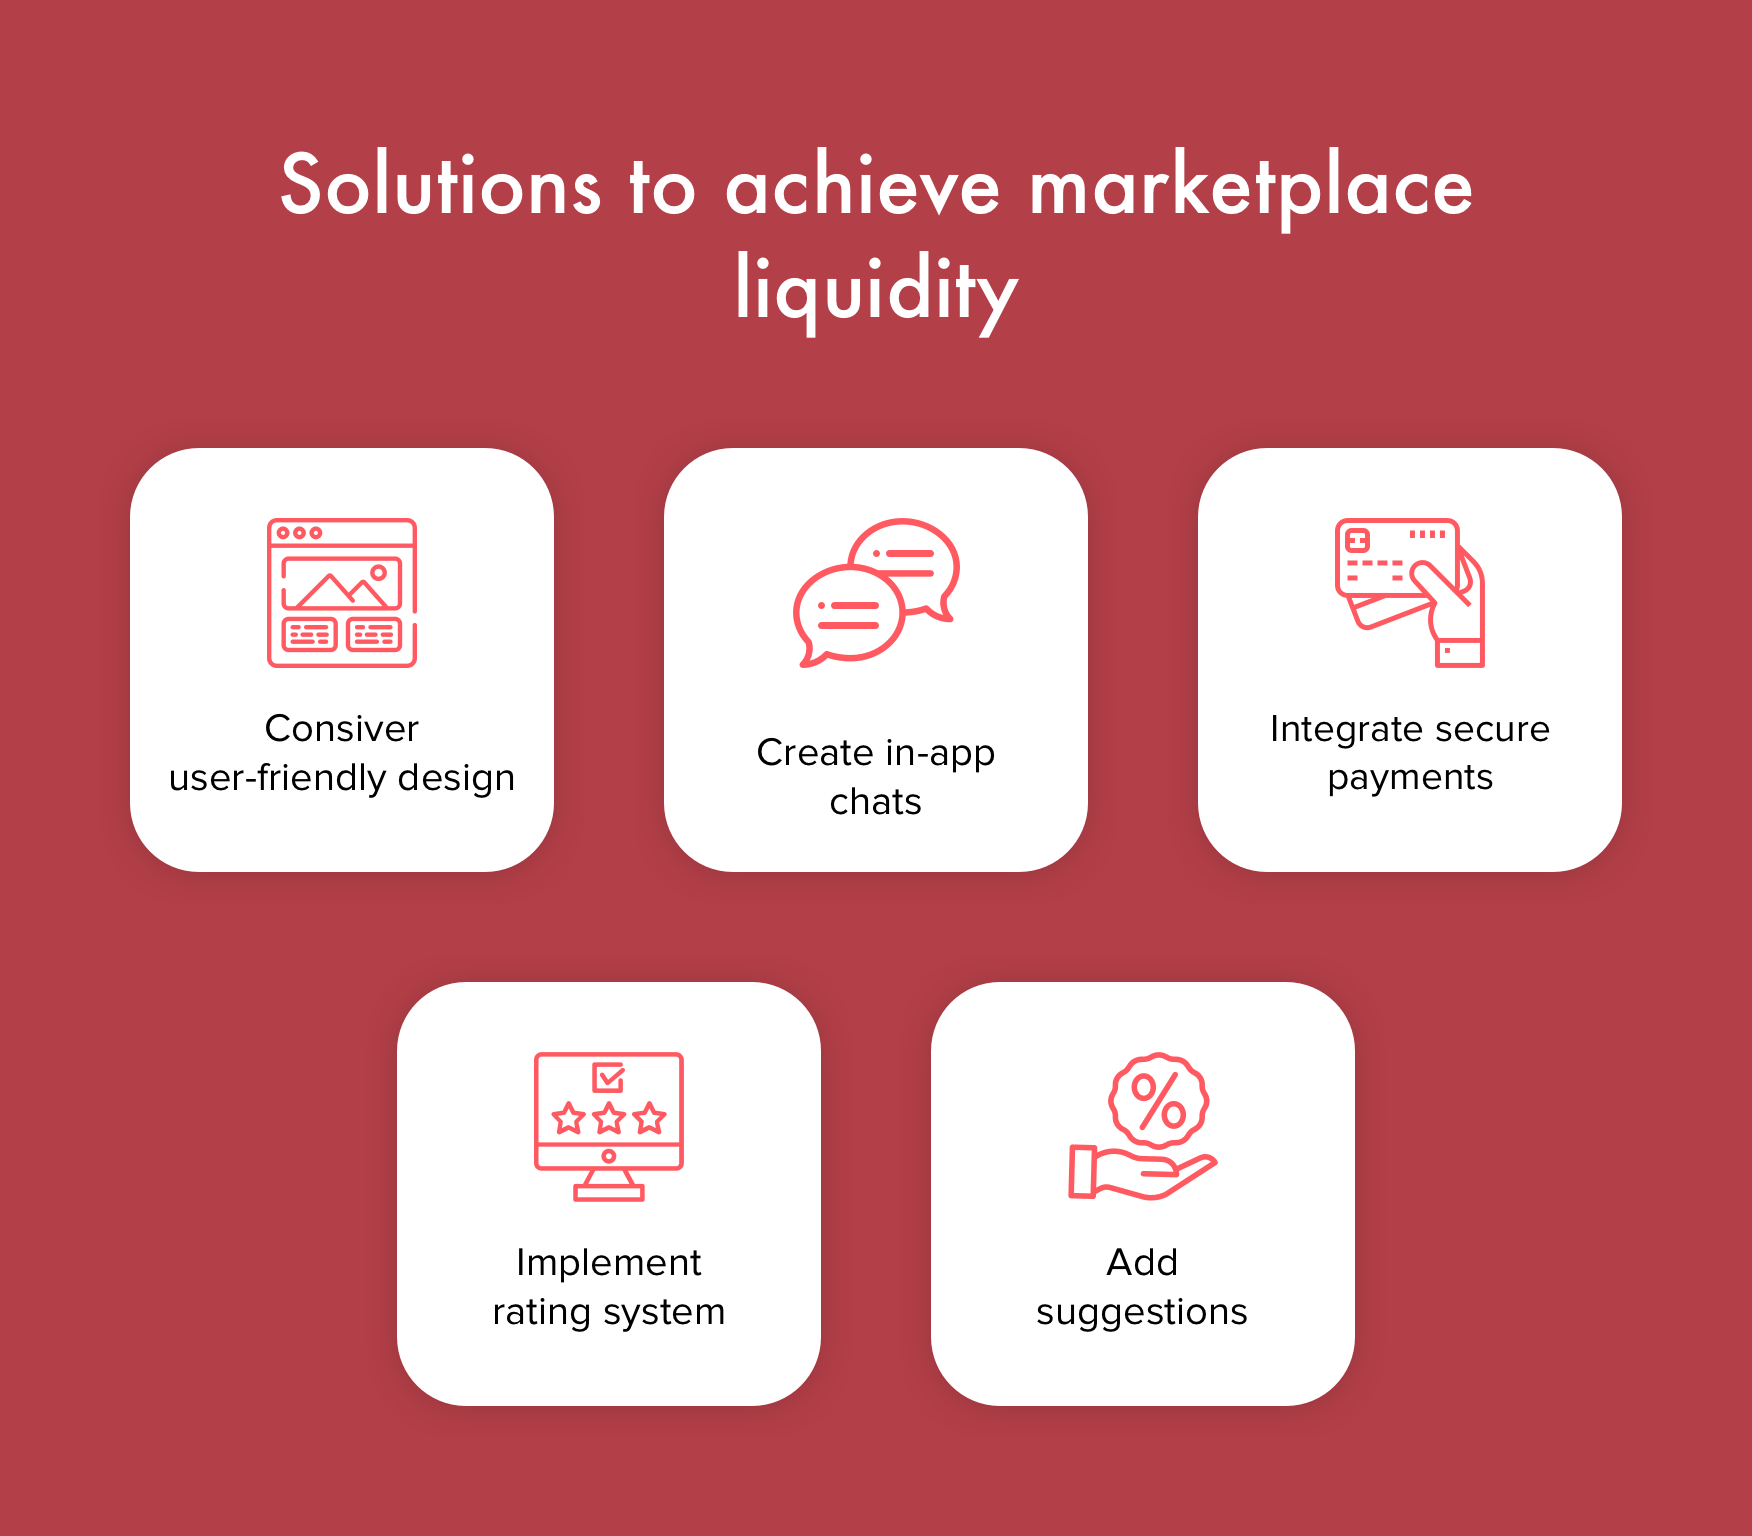 How to achieve high marketplace liquidity